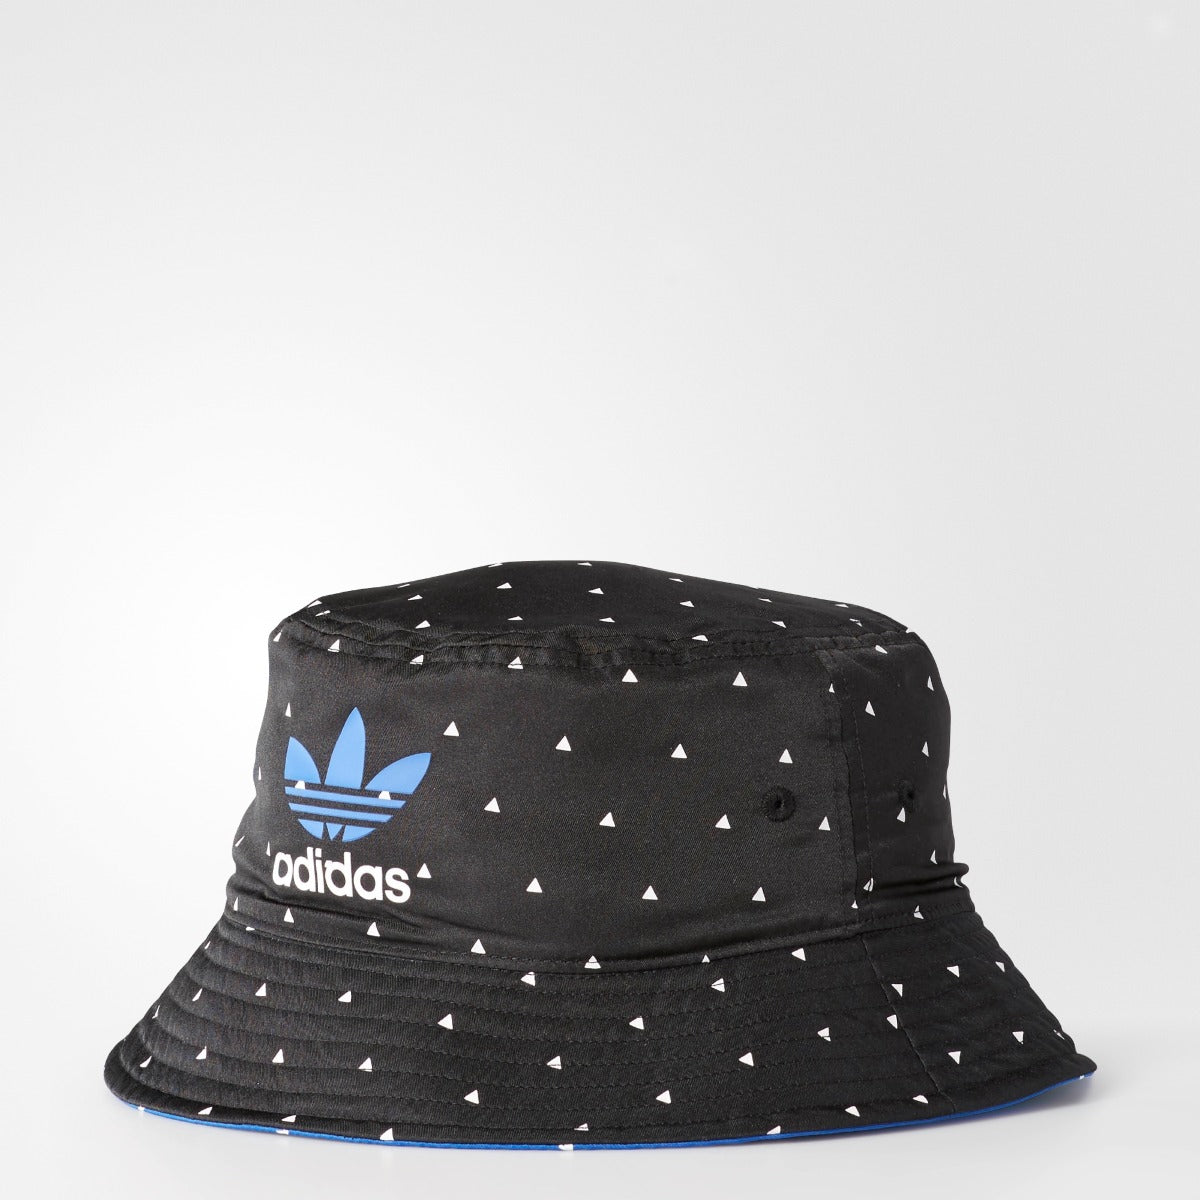 Men s Adidas Originals X Pharrell Williams Reversible Bucket Hat Black   Blue. 1 2112c3d5b275